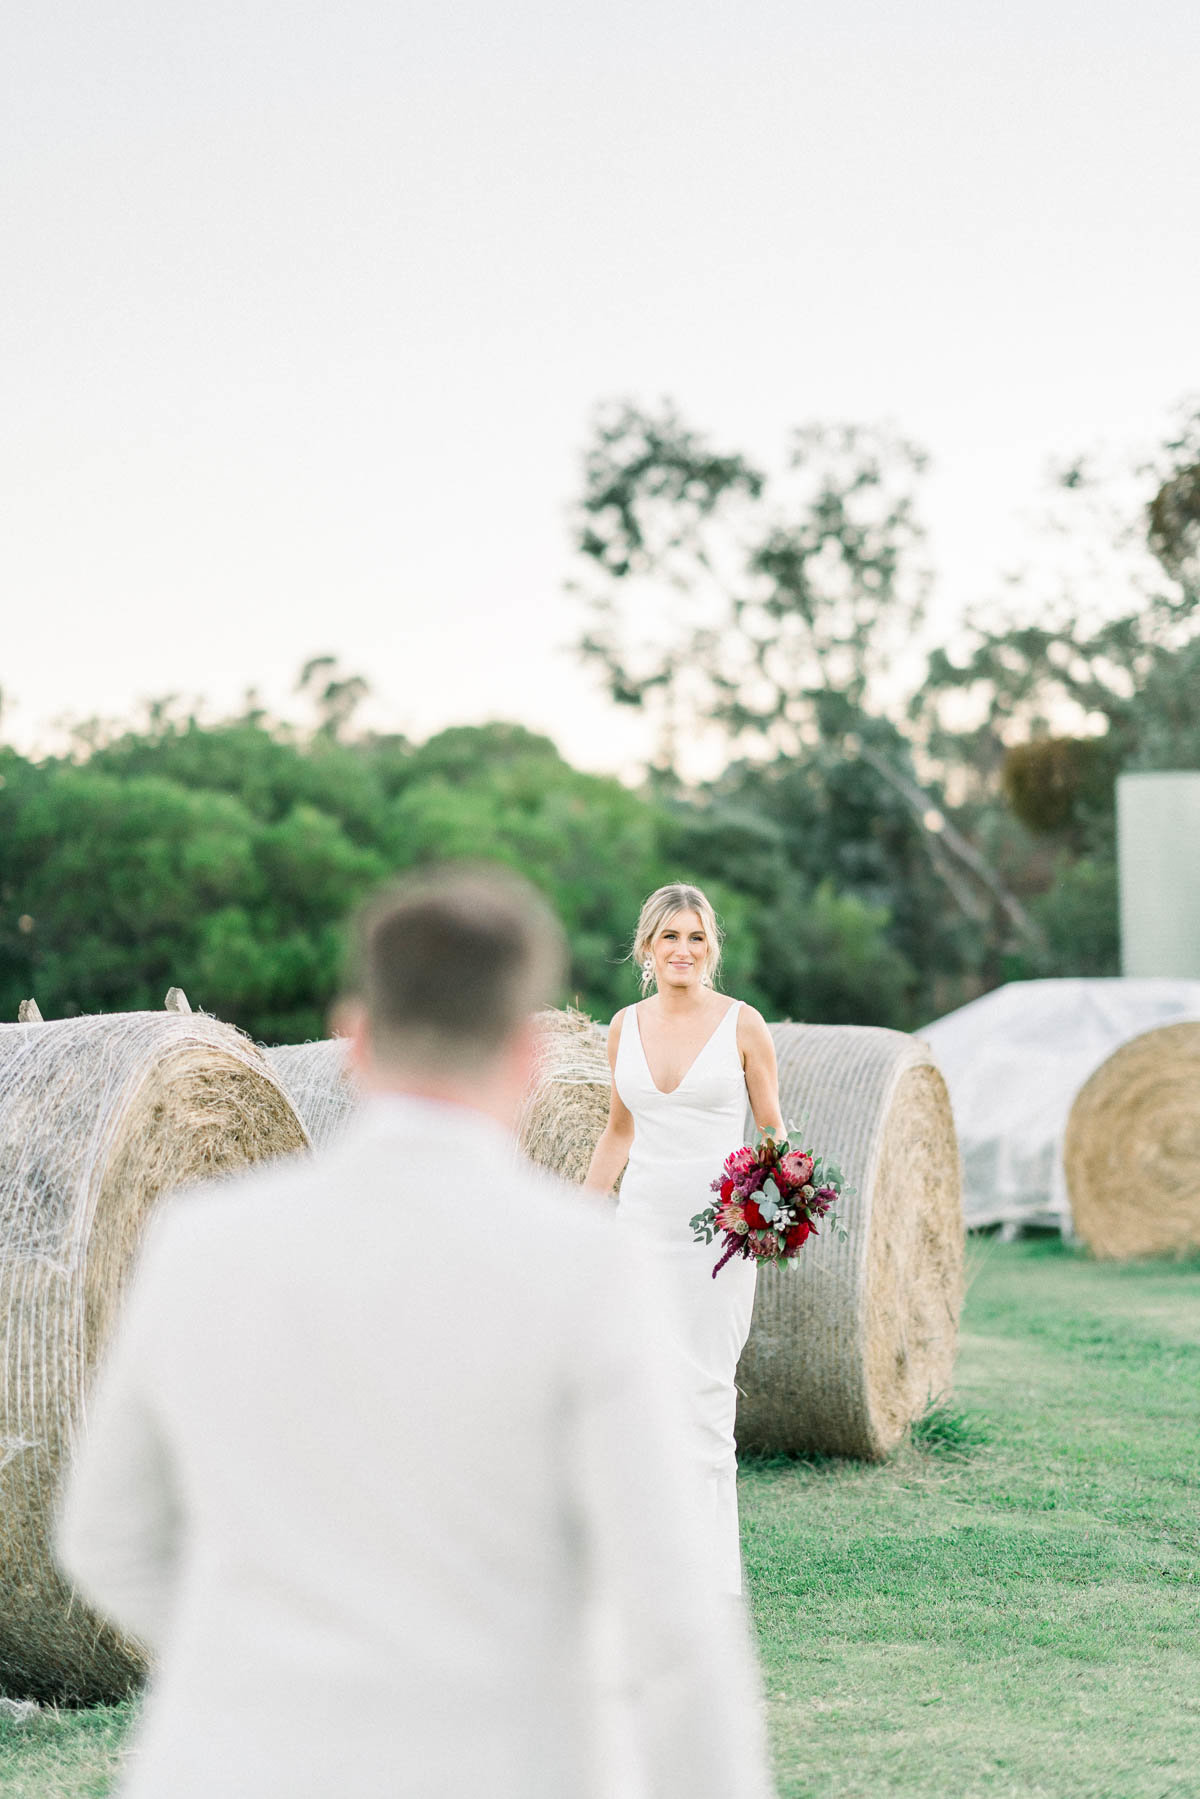 rustic-yarra-valley-wedding-venue-acacia-ridge-georgia-james-08372